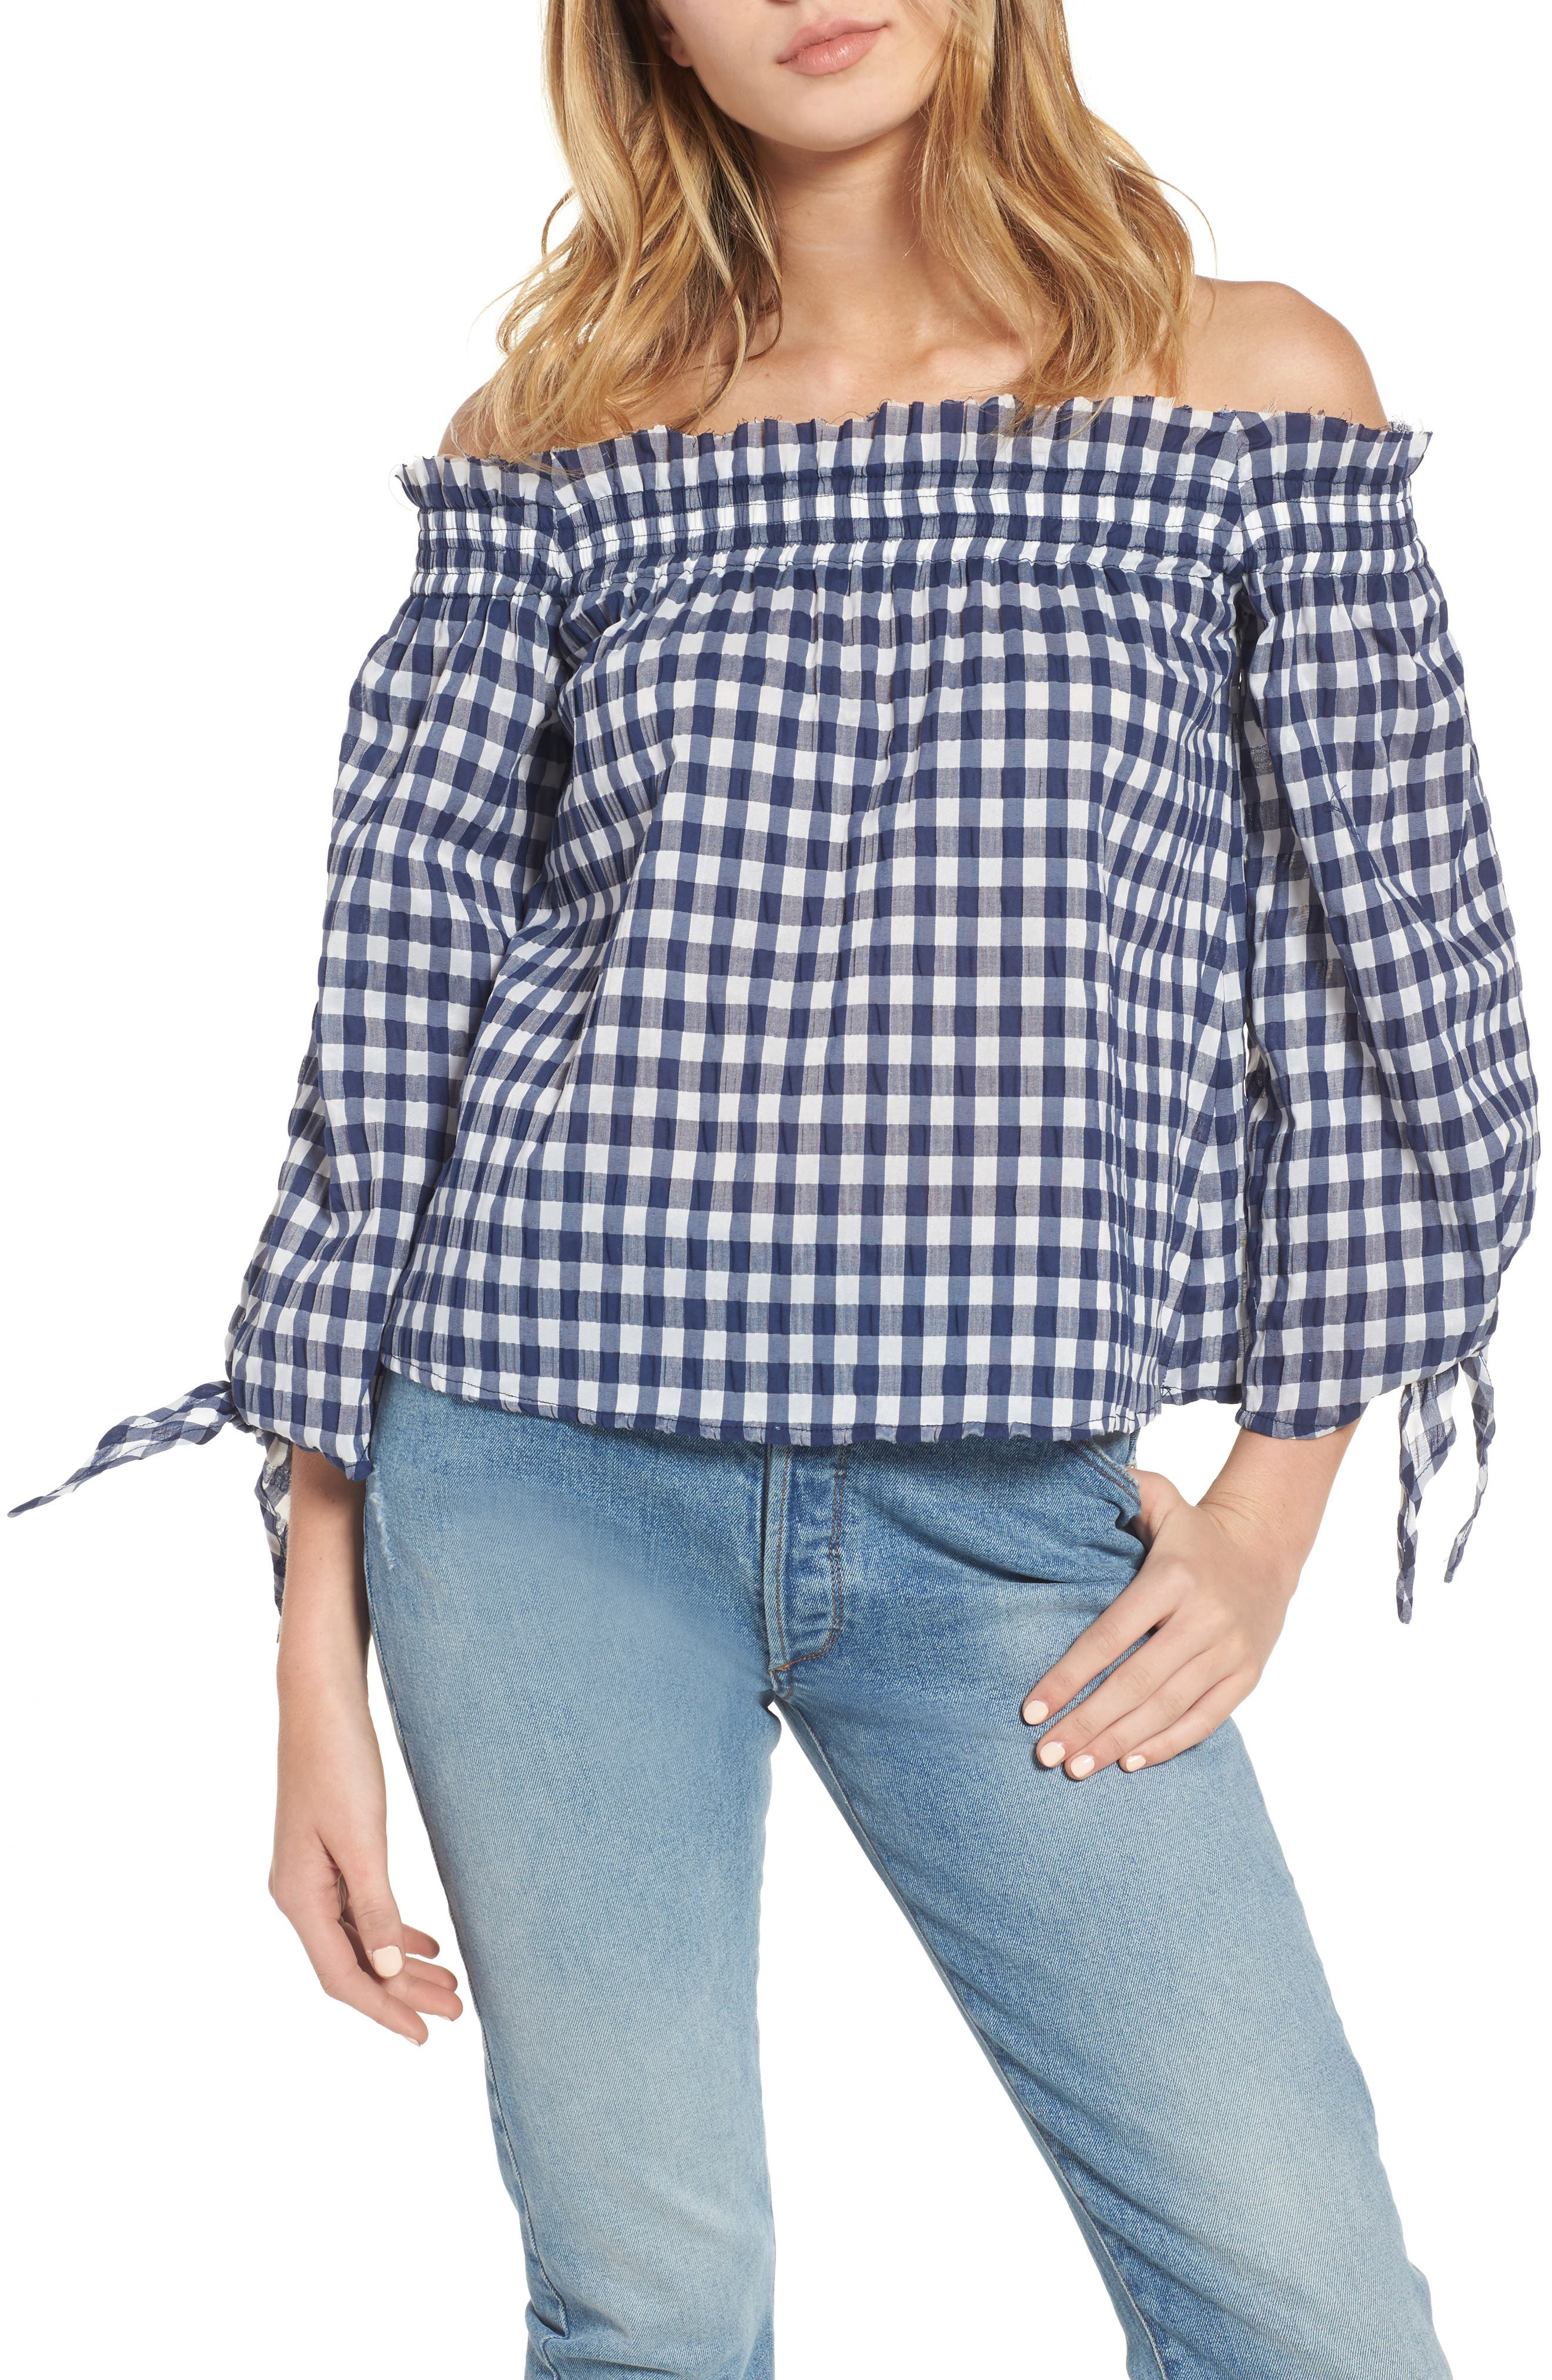 Alternate Image 1 Selected - McGuire Pina Gingham Off the Shoulder Top